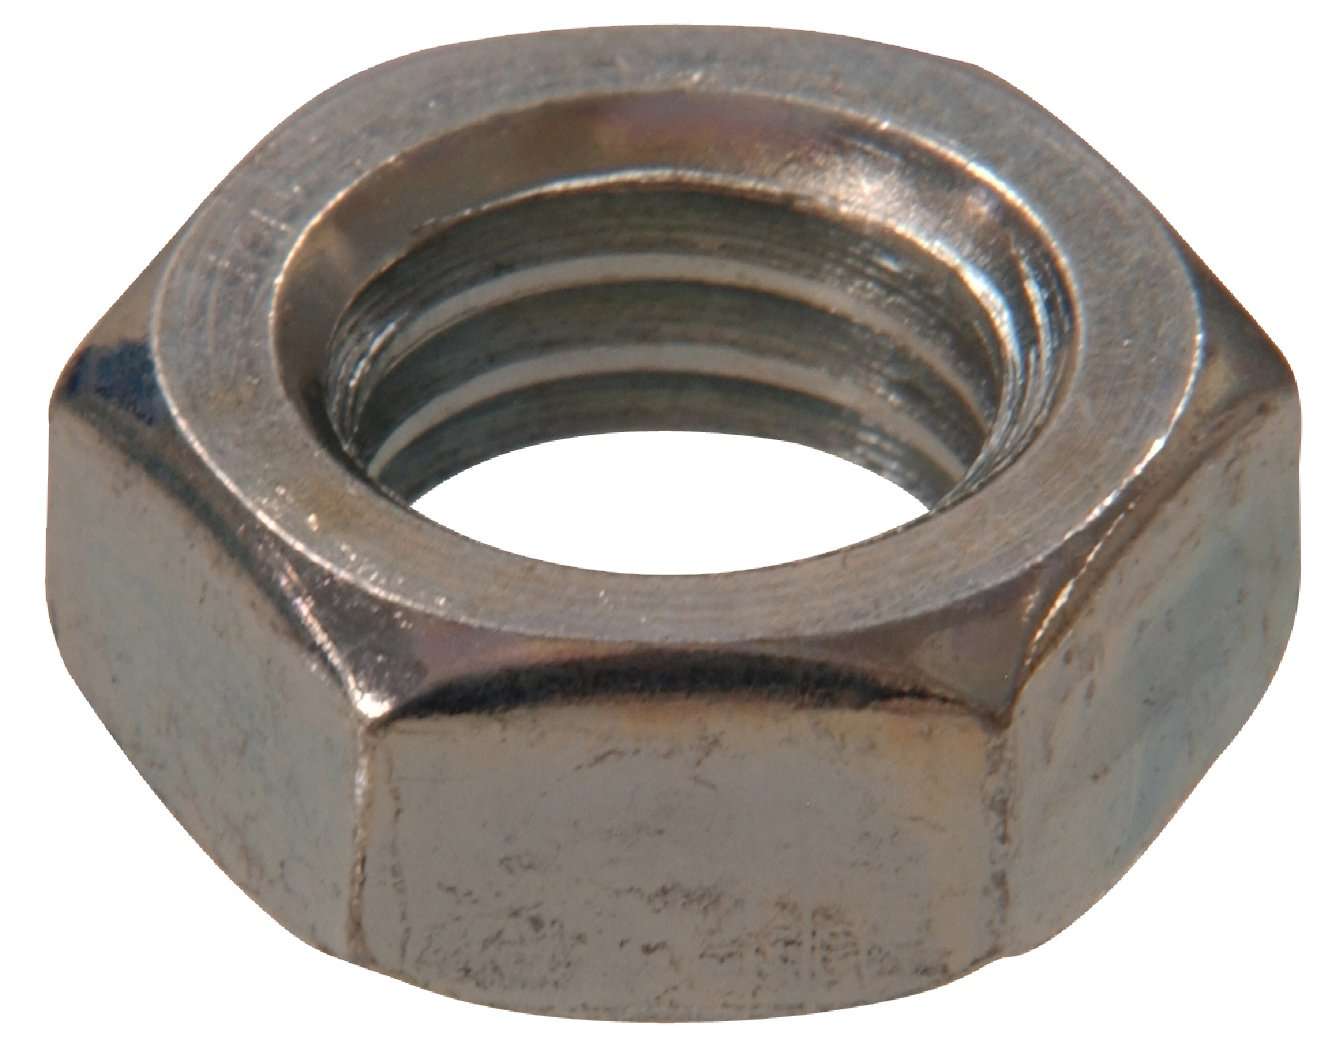 The Hillman Group 160056 1 1 1 3//4-16 Hex Jam Nut 20-Pack